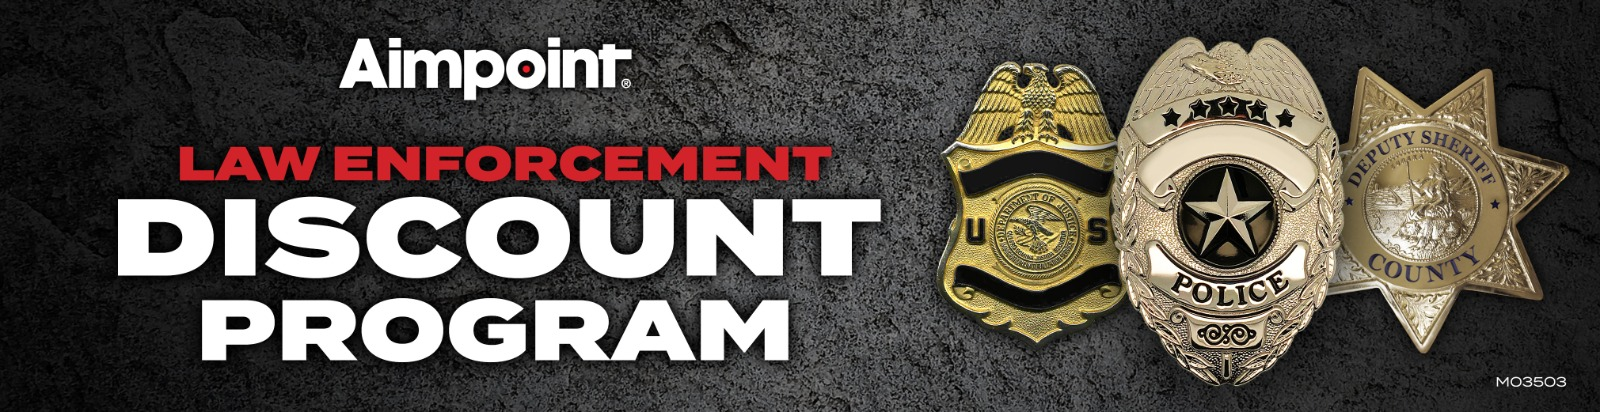 Police and Military Discount by Aimpoint USA